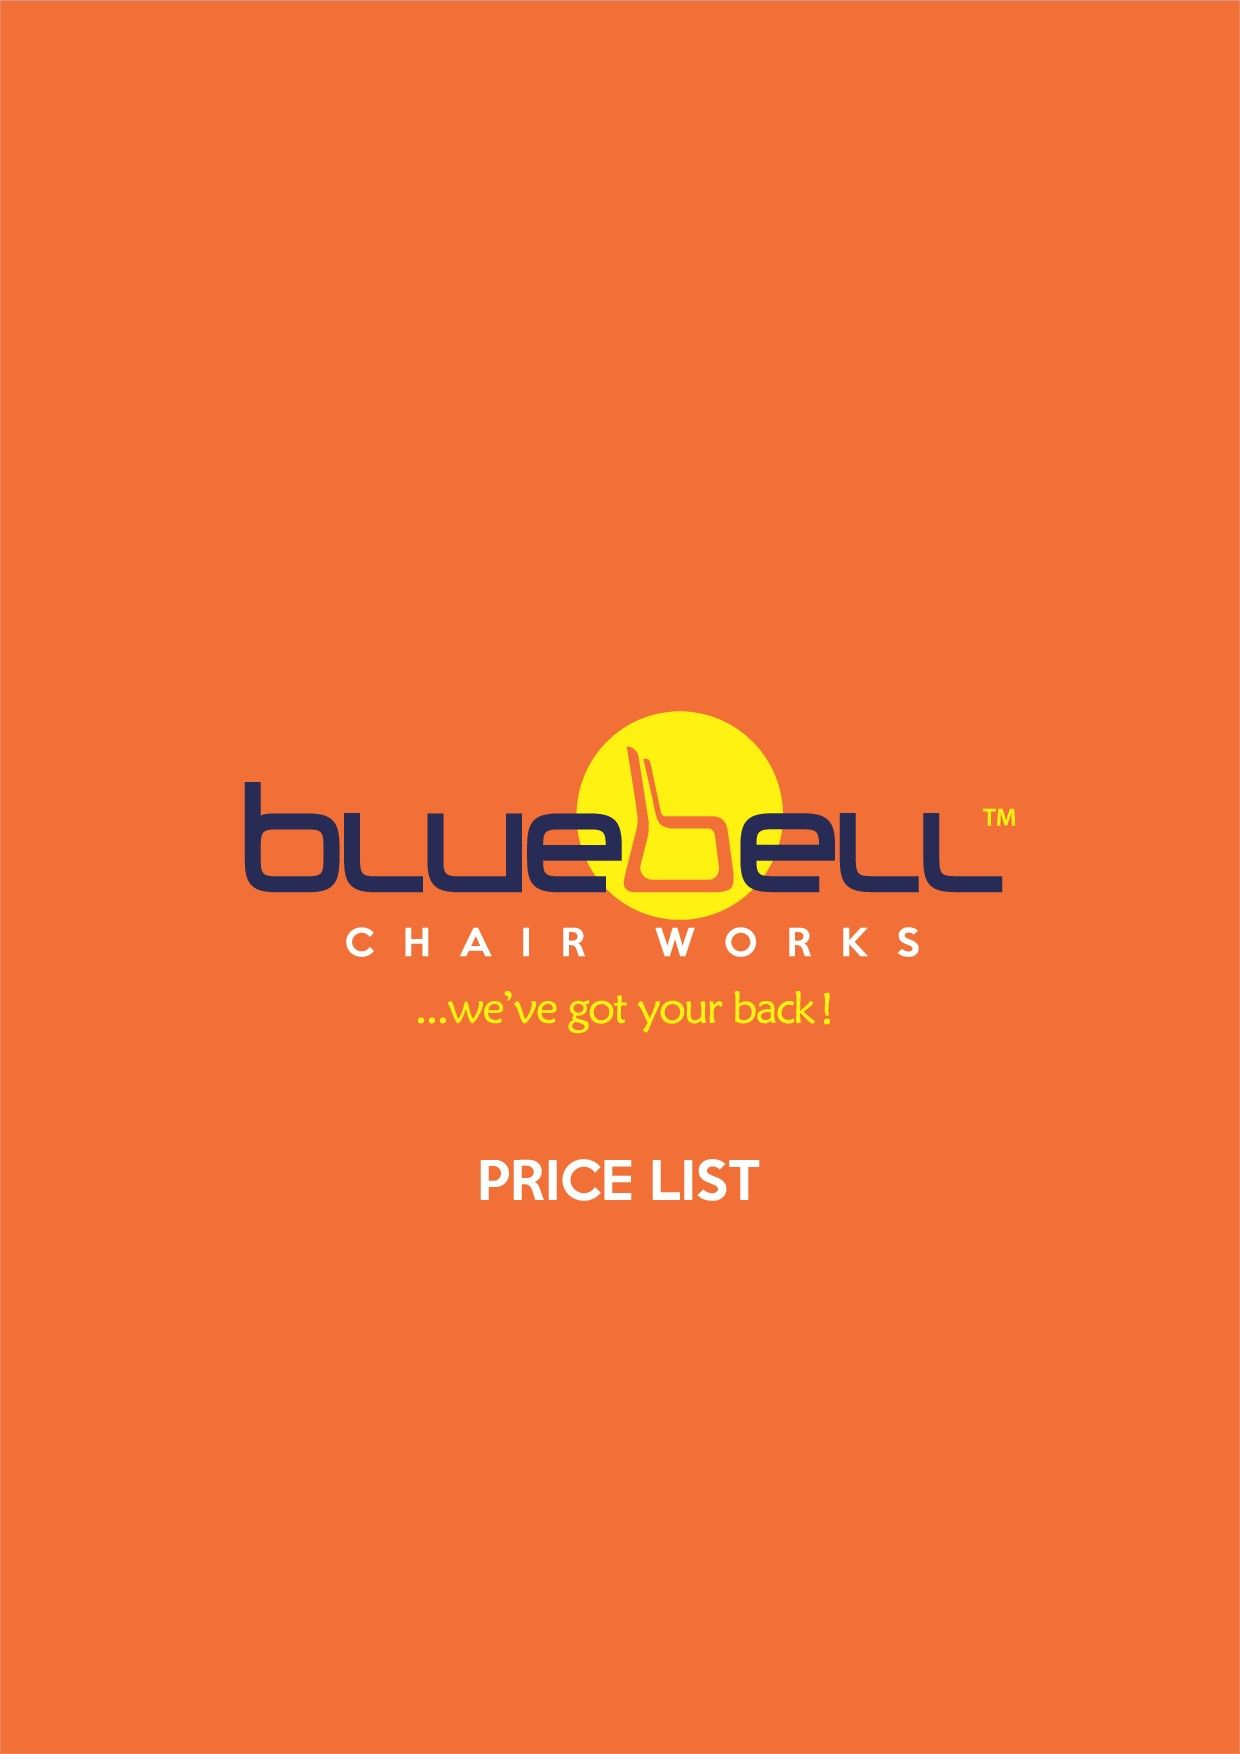 View Our Latest Fantastic Ergonomics Office Chair Catalogues Catalogs Of Bluebell Company That Helps You Choose The Right Cha With Images Catalog Ergonomic Chair Bluebells